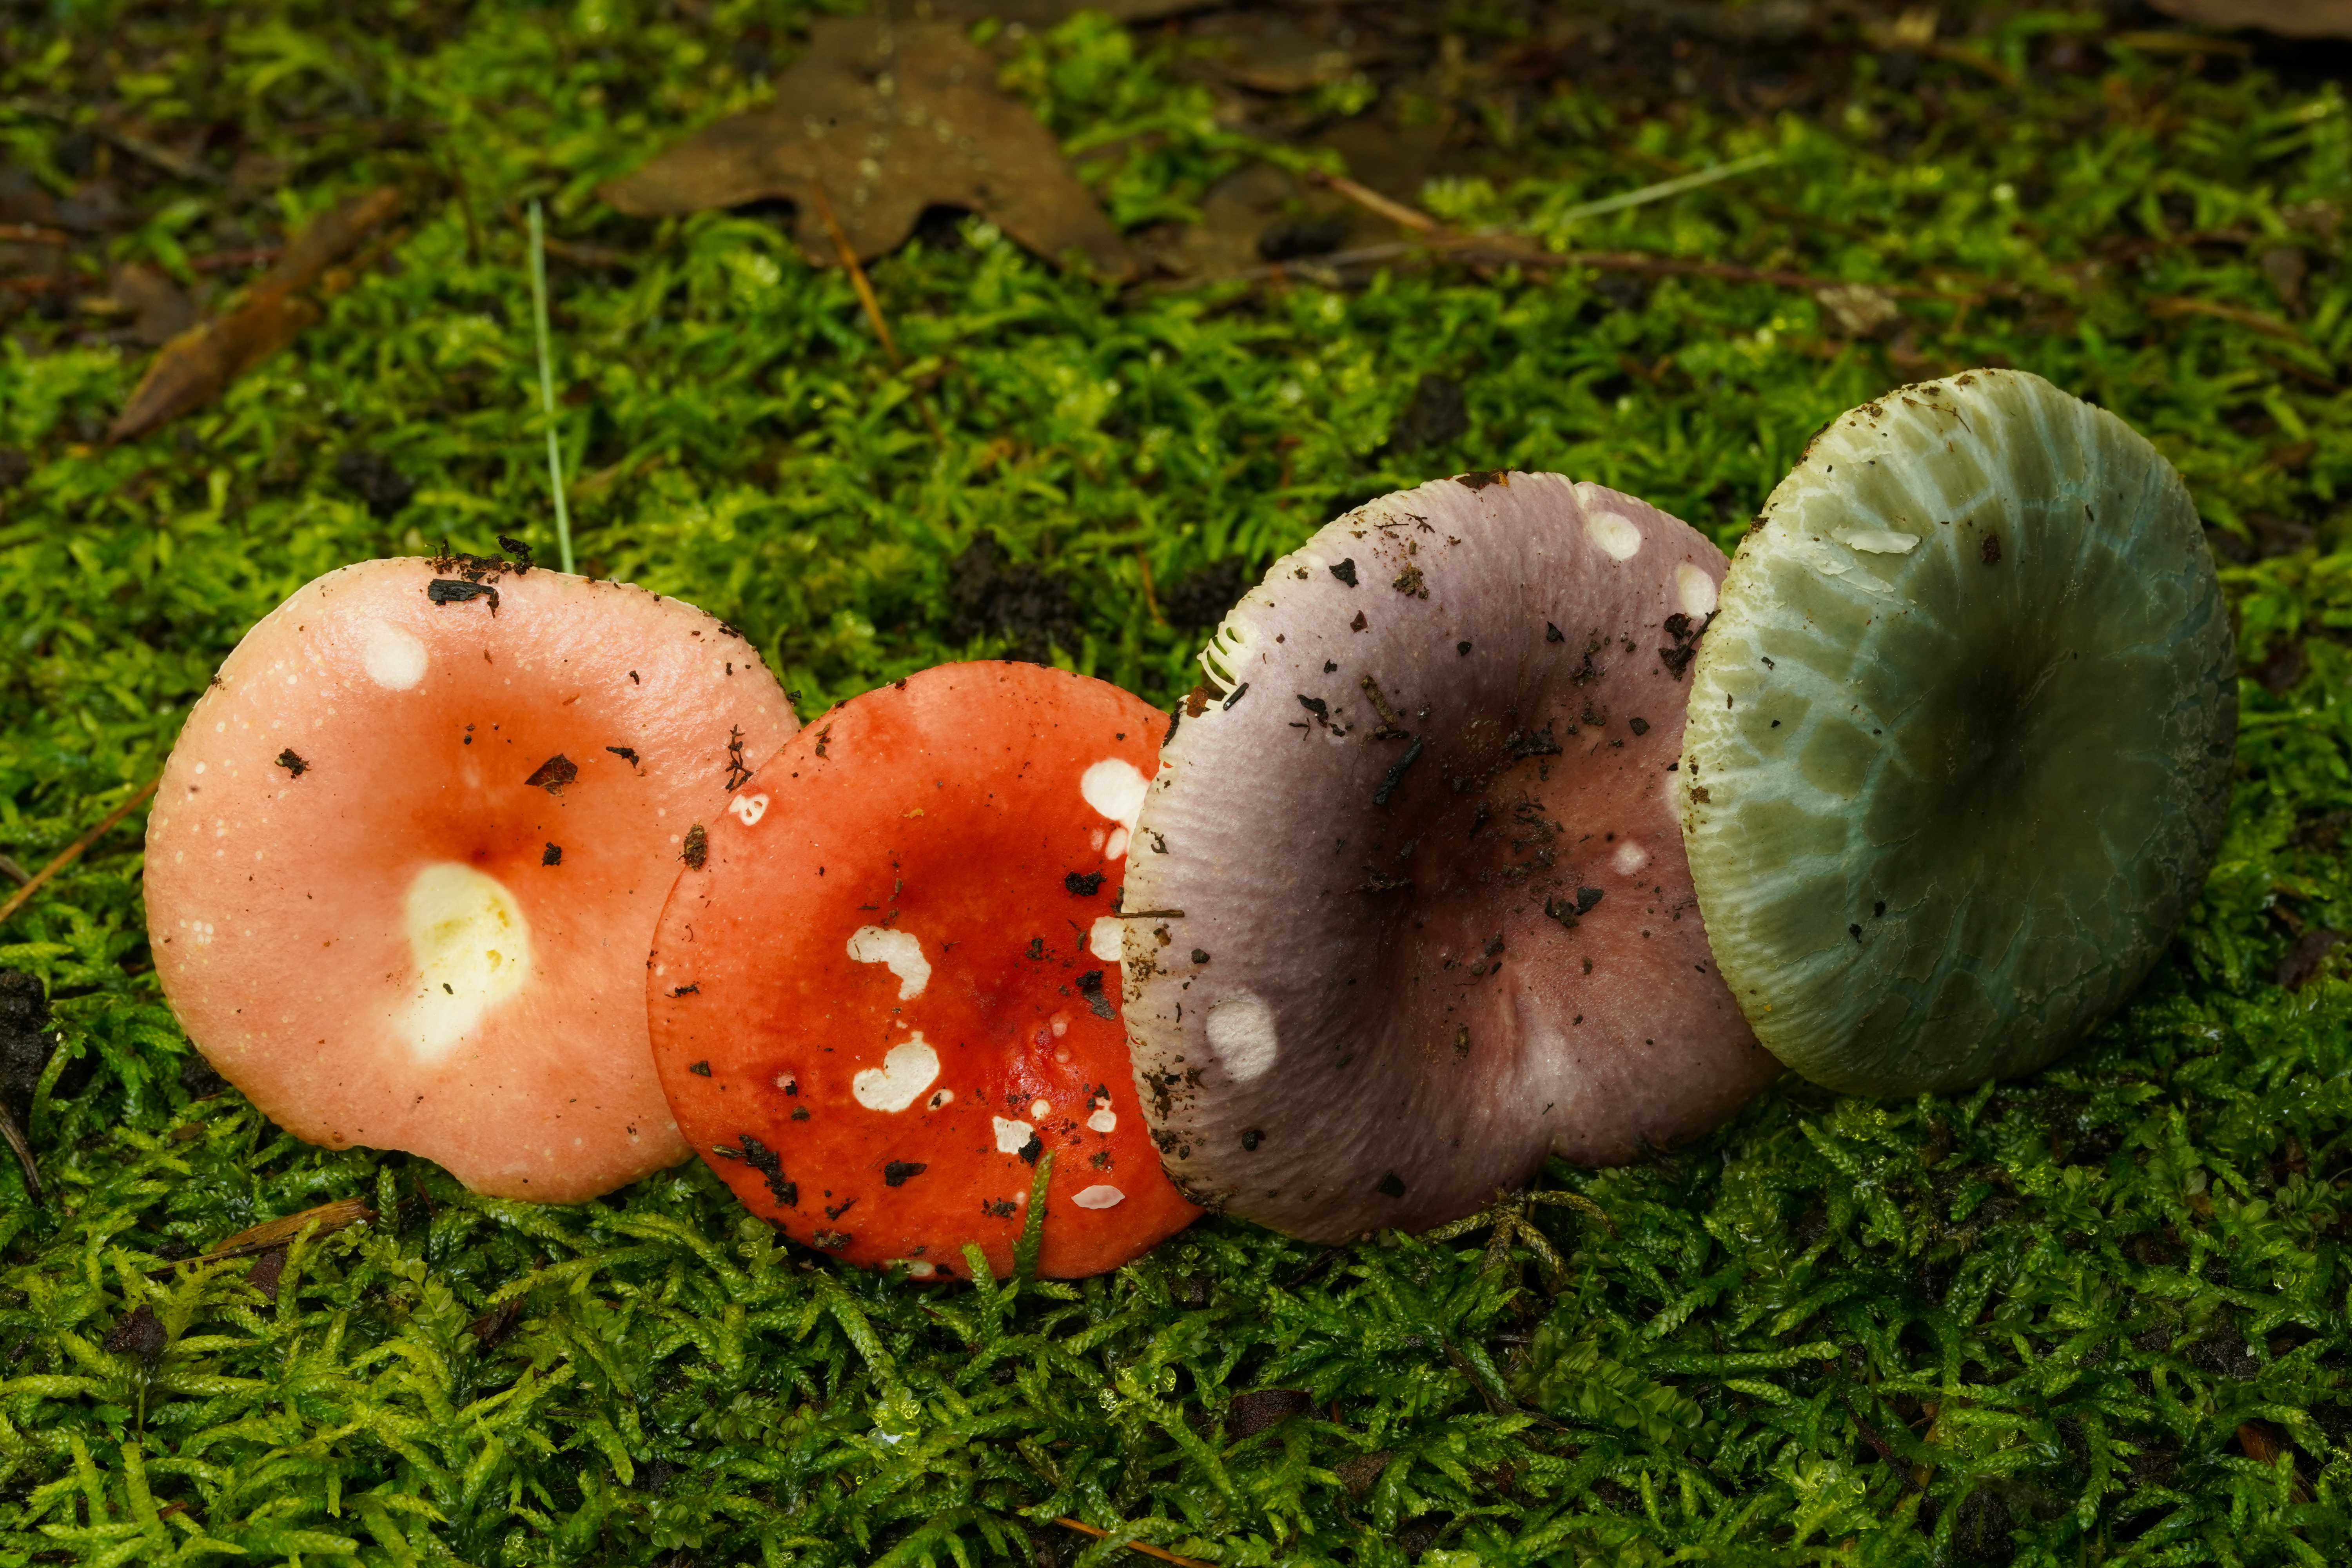 A Chance Encounter with Russula Mushrooms